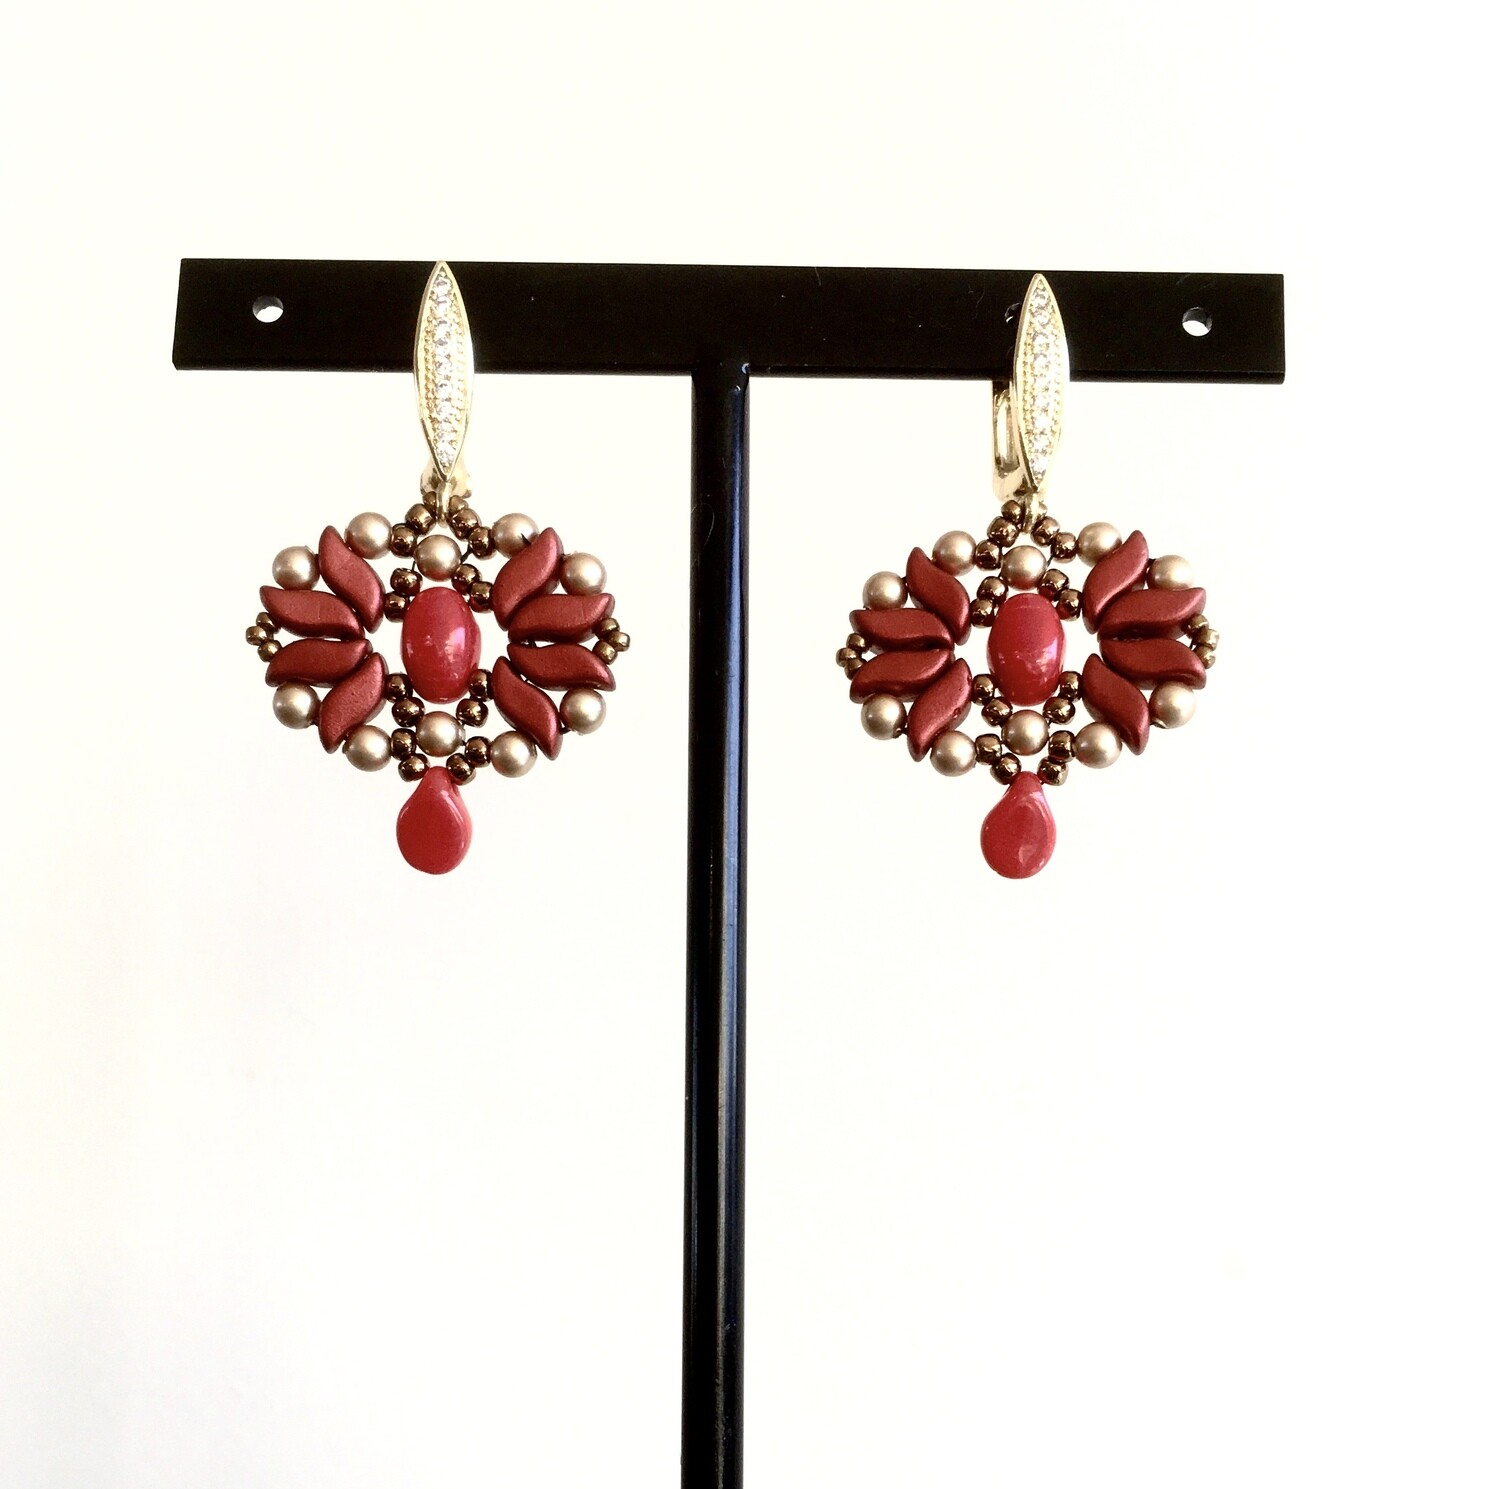 Crimson star earrings